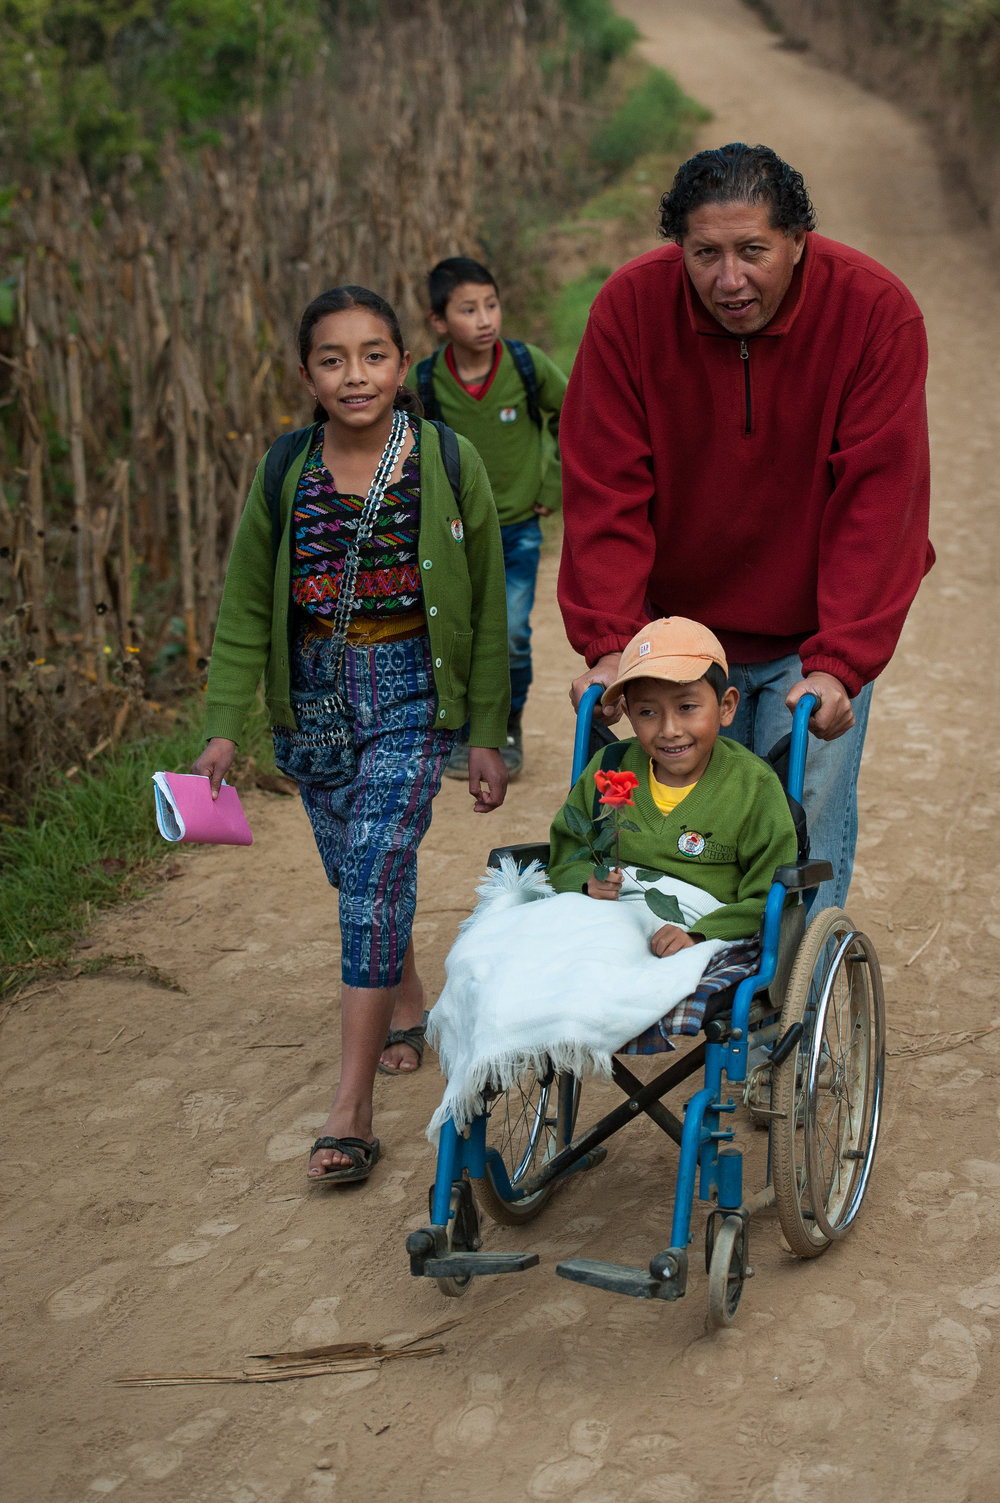 Long Way Home, Guatemala - By Ron Wilson, Photographers Without Borders